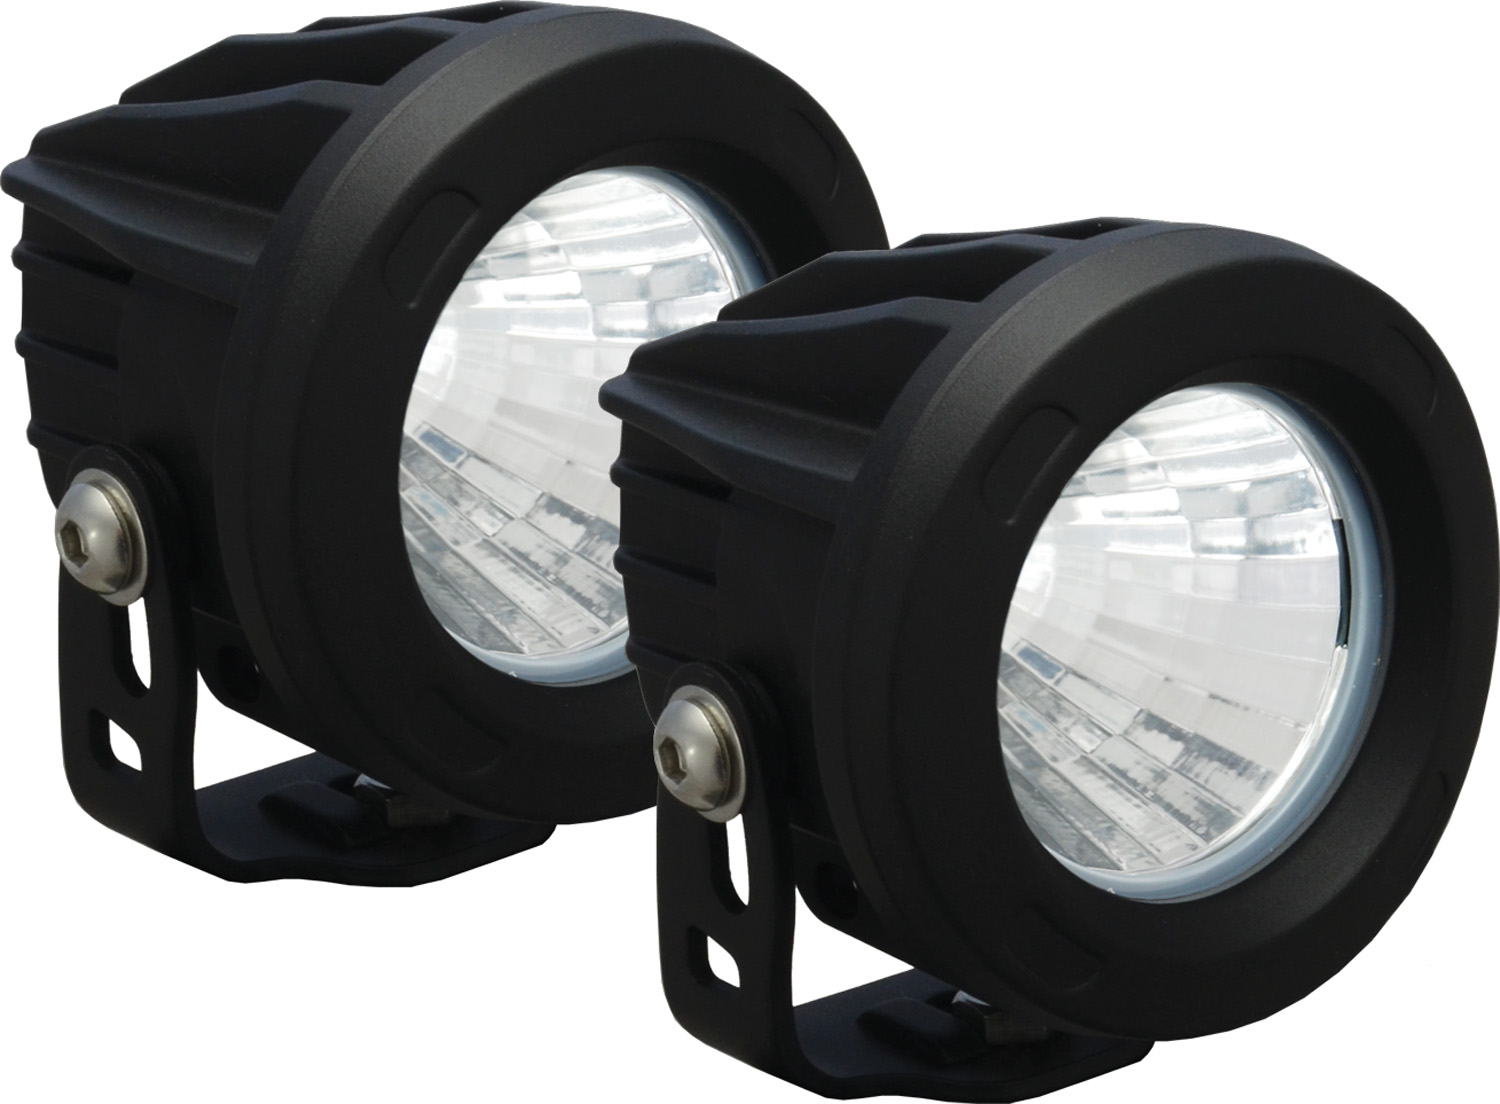 OPTIMUS ROUND BLACK 1 10W LED 20? MEDIUM KIT OF 2 LIGHTS